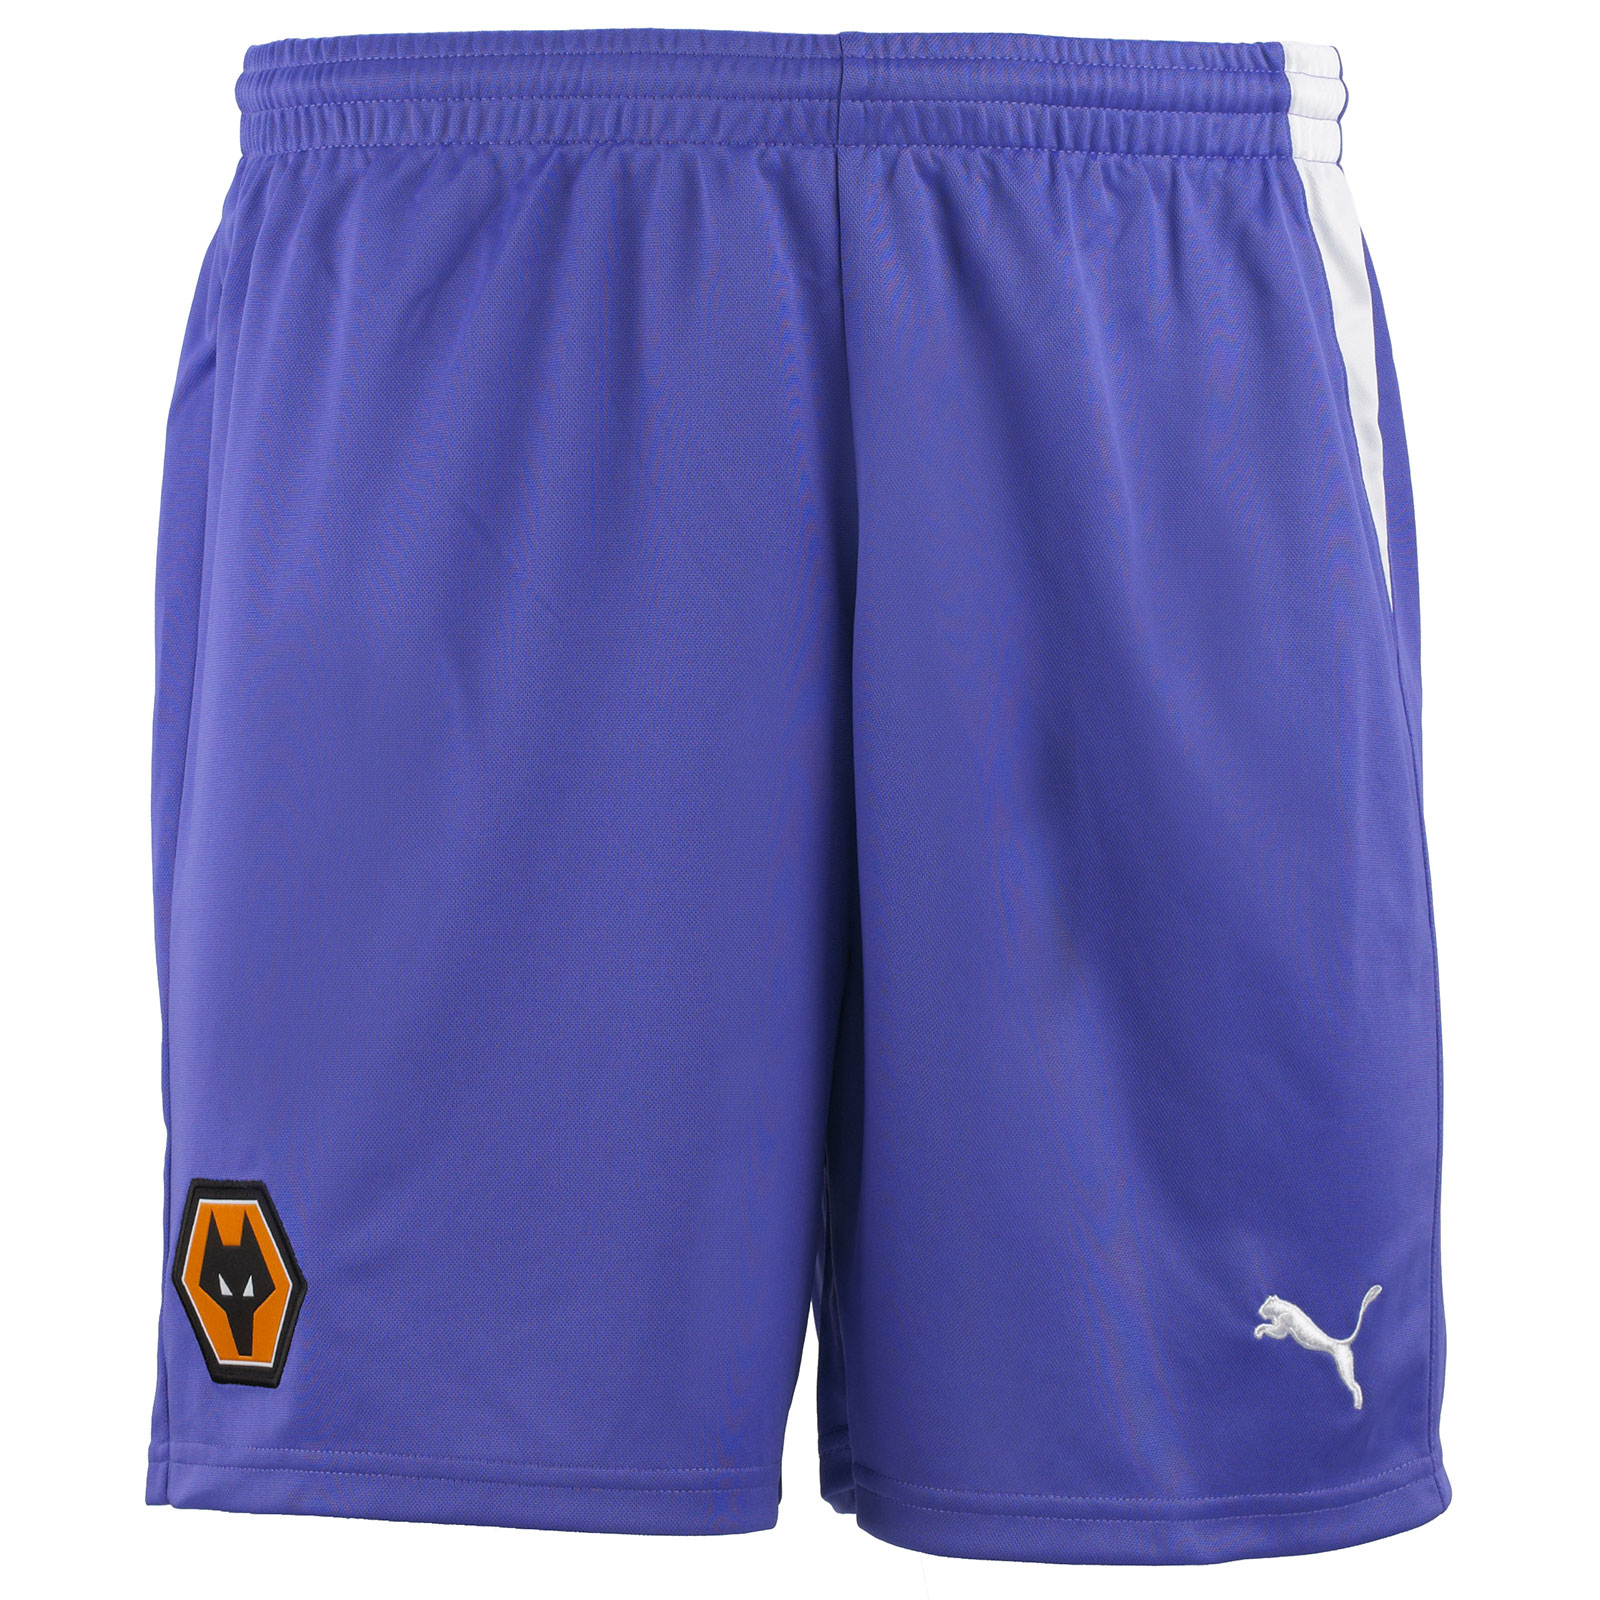 The new wolves 13 14 away kit comes in purple including a white collar